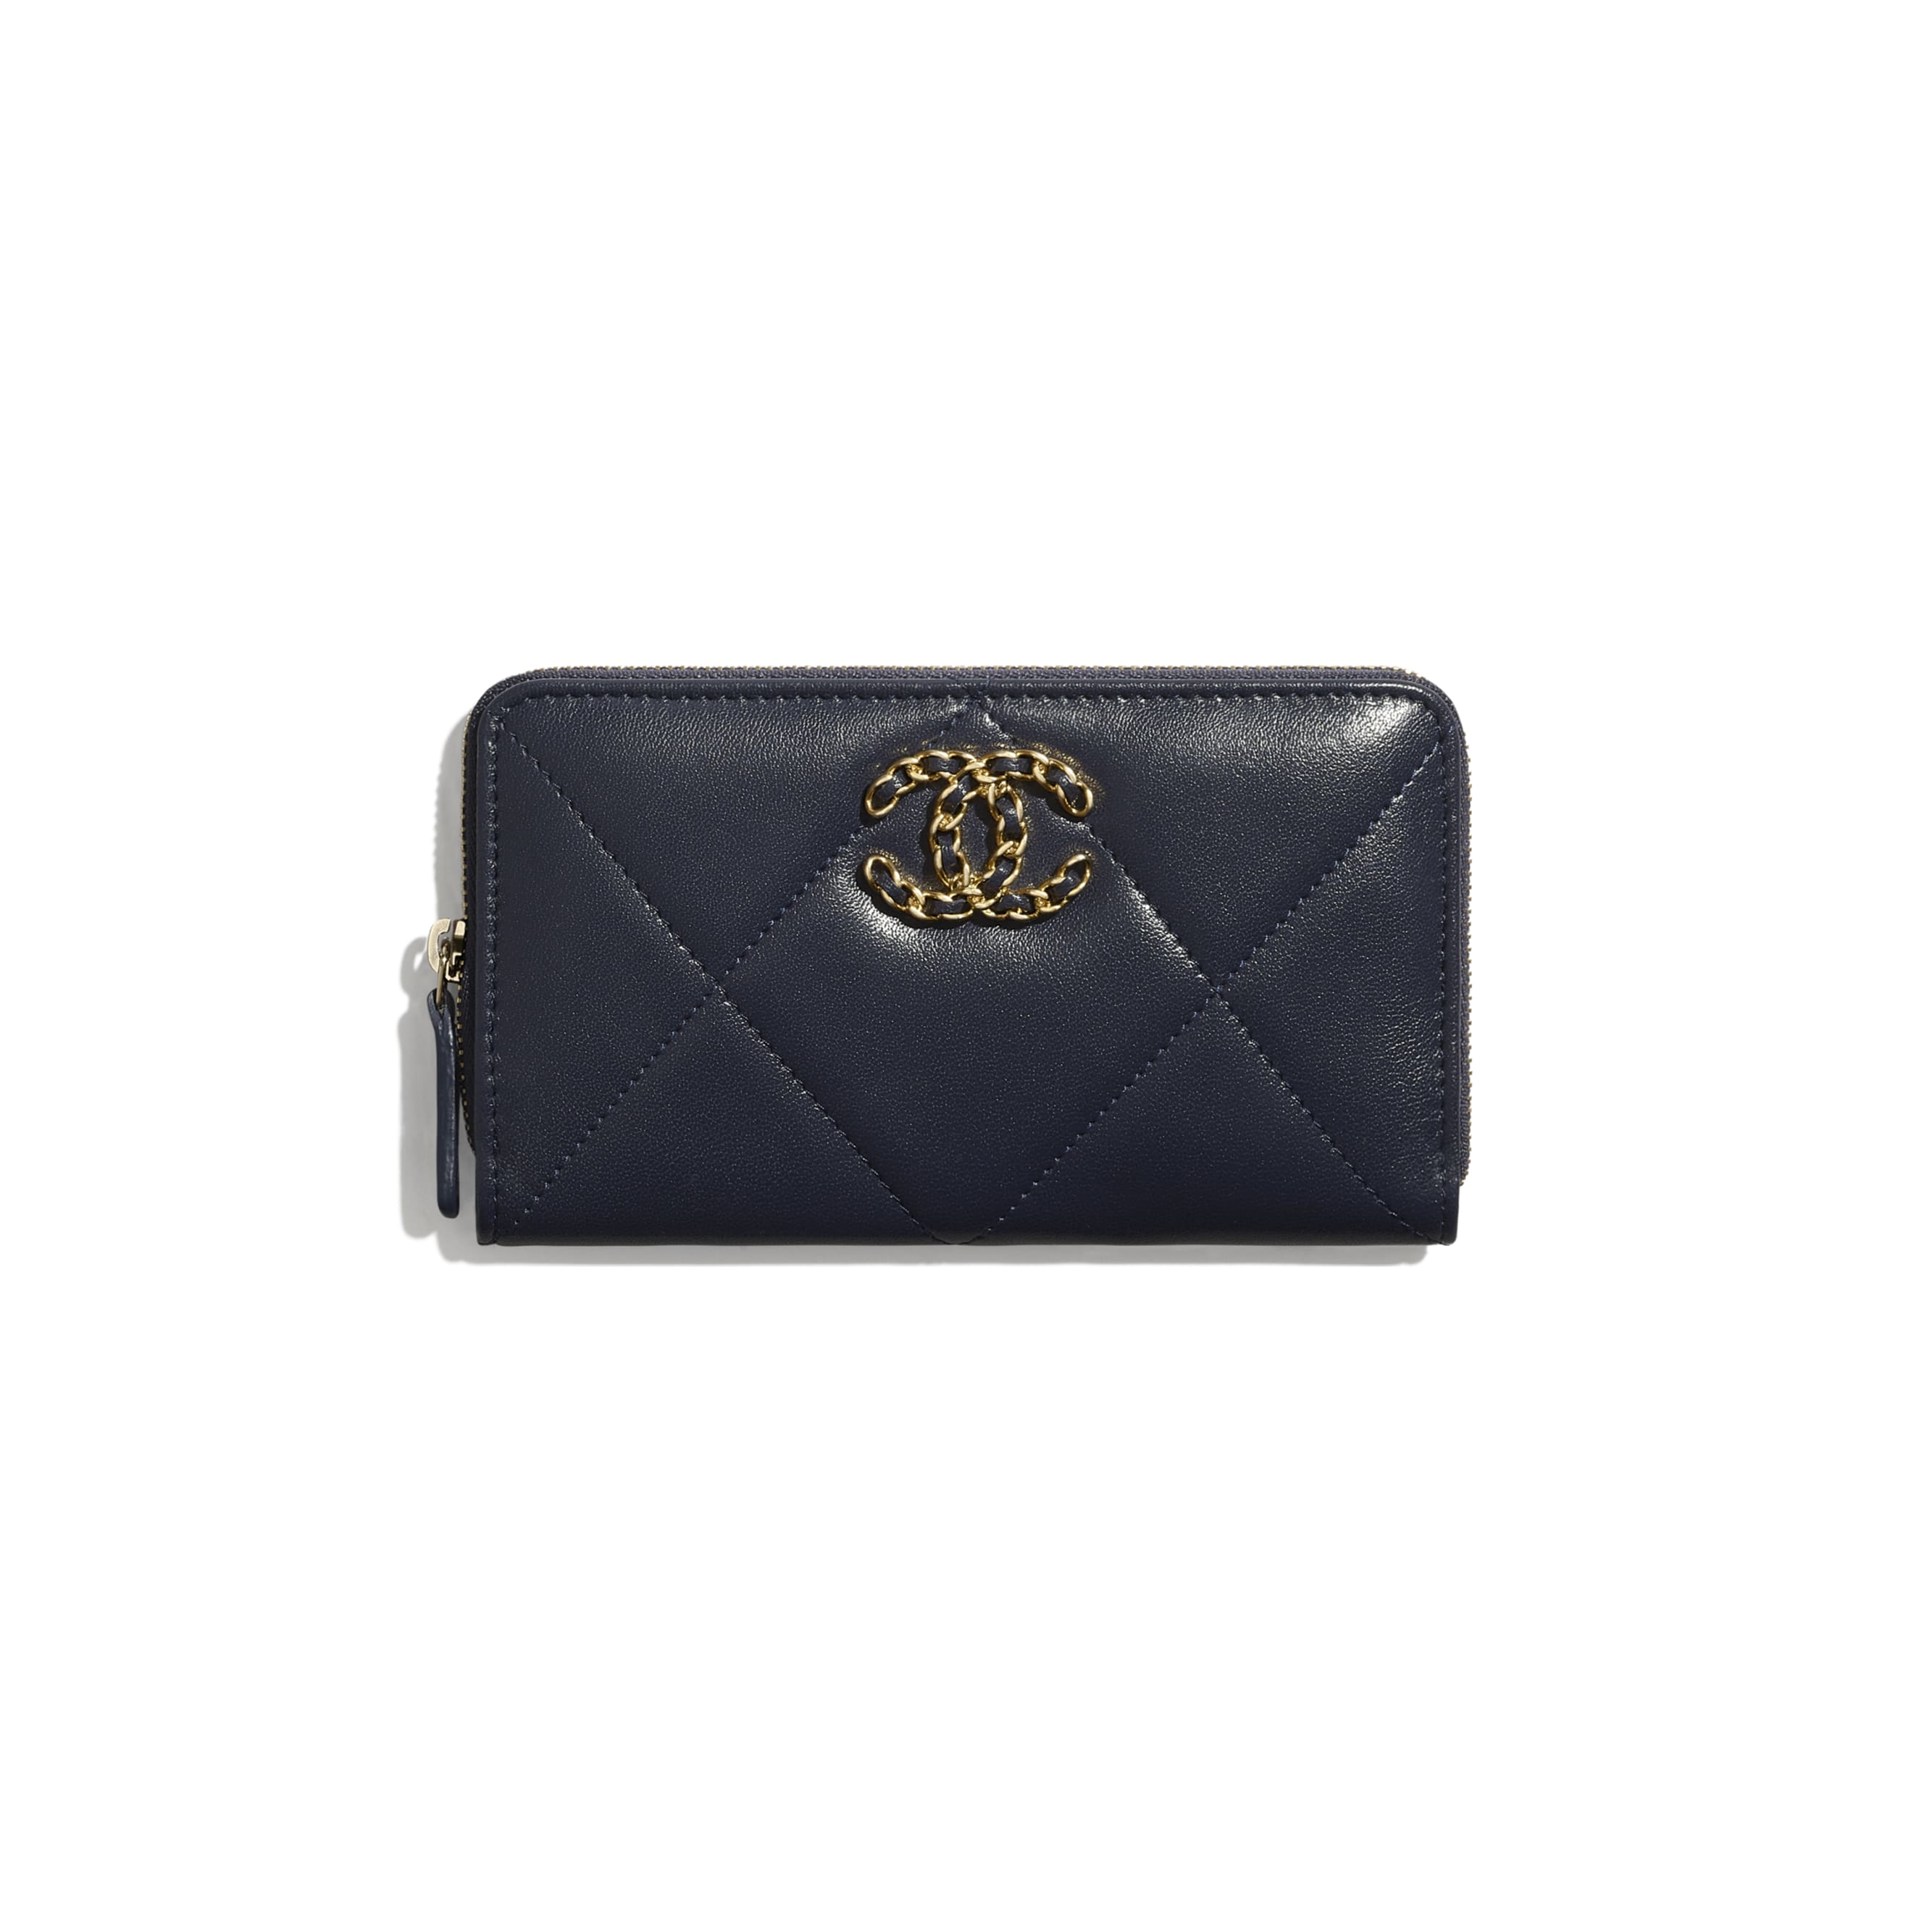 CHANEL 19 Zipped Wallet - Navy Blue - Lambskin, Gold-Tone, Silver-Tone & Ruthenium-Finish Metal - Default view - see standard sized version